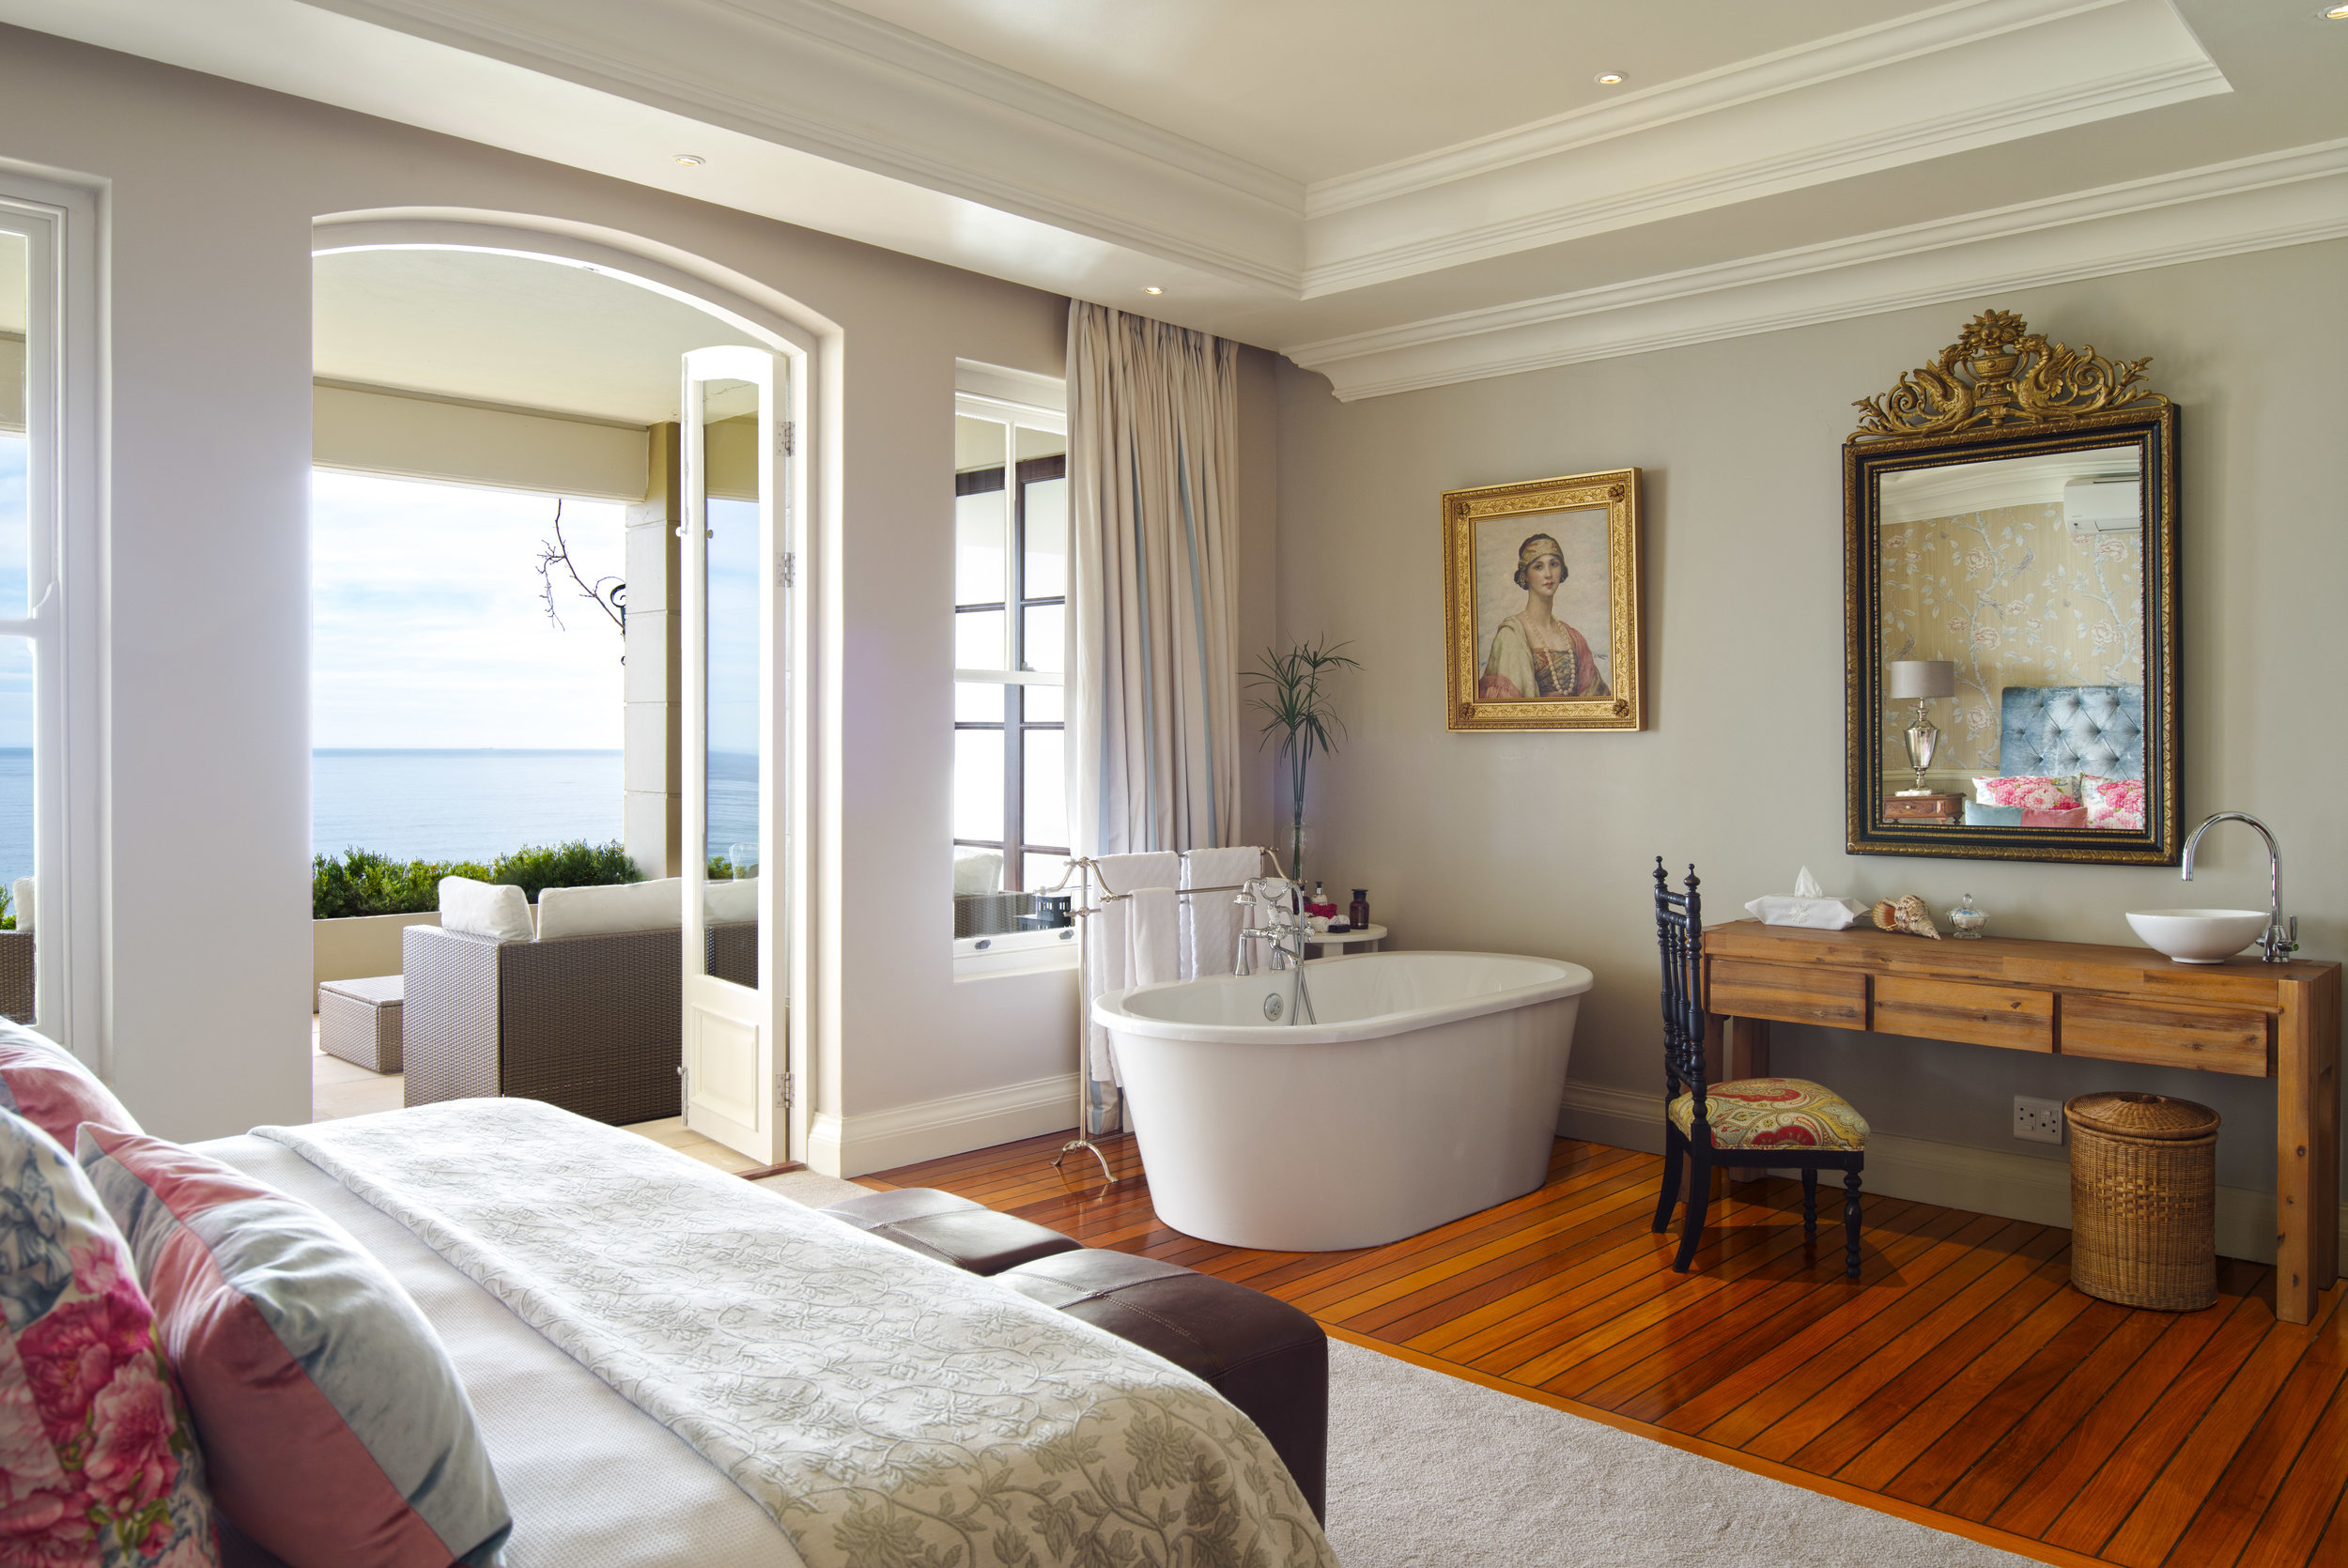 The Queen Suite at 21 Nettleton with a plush bed and feature bath in the bedroom looking onto the private deck with ocean views